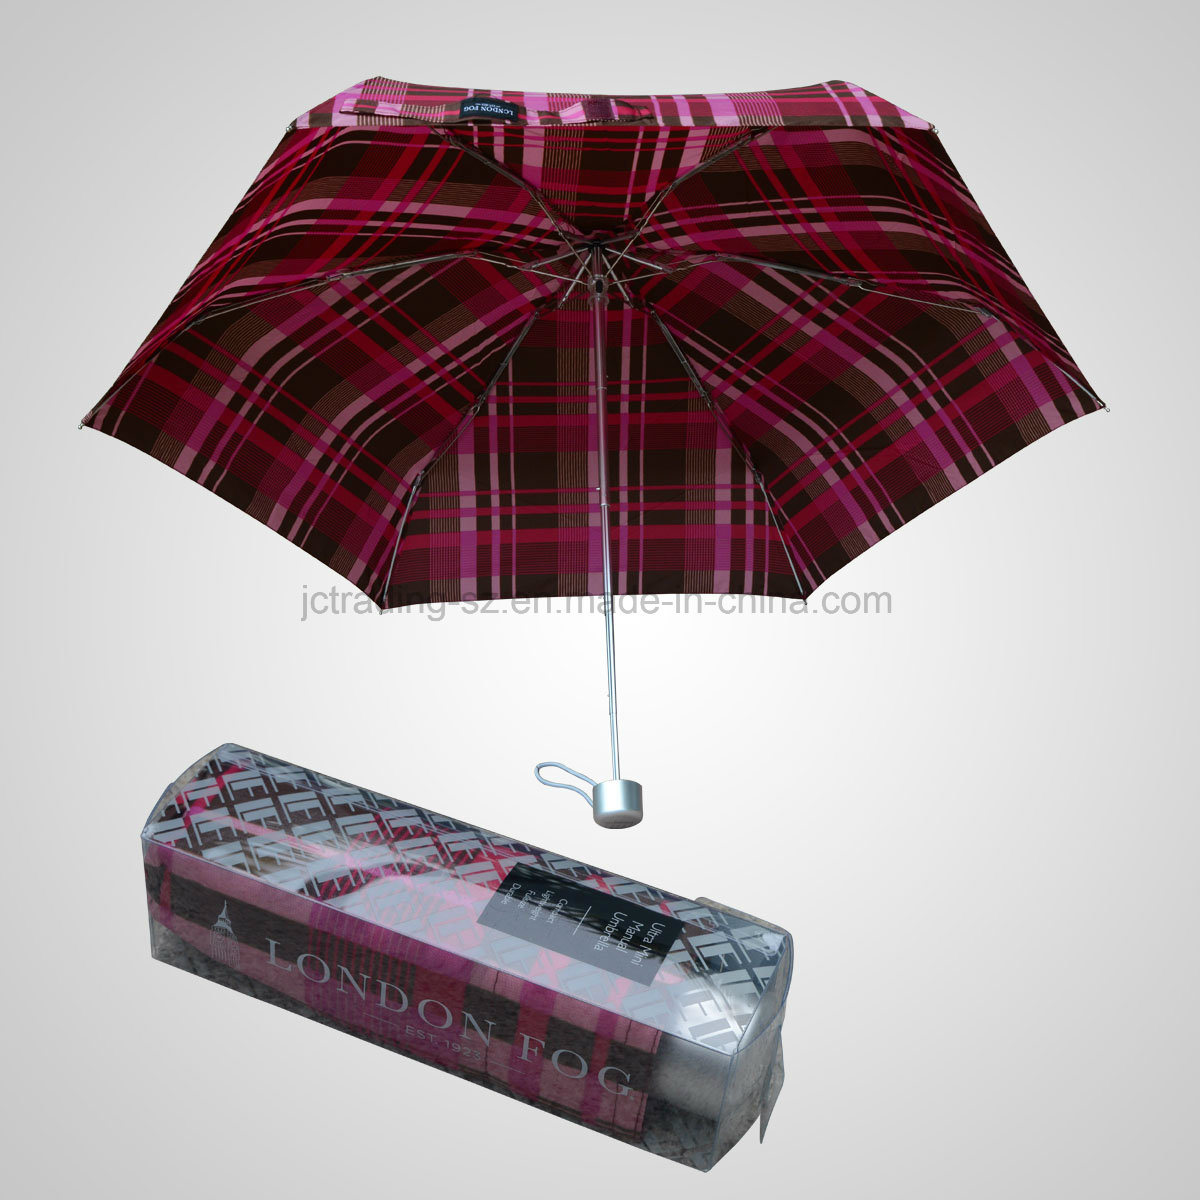 5 Folding Manual Mini Lady Umbrella Rain/Sun Umbrella (JF-MLF501)